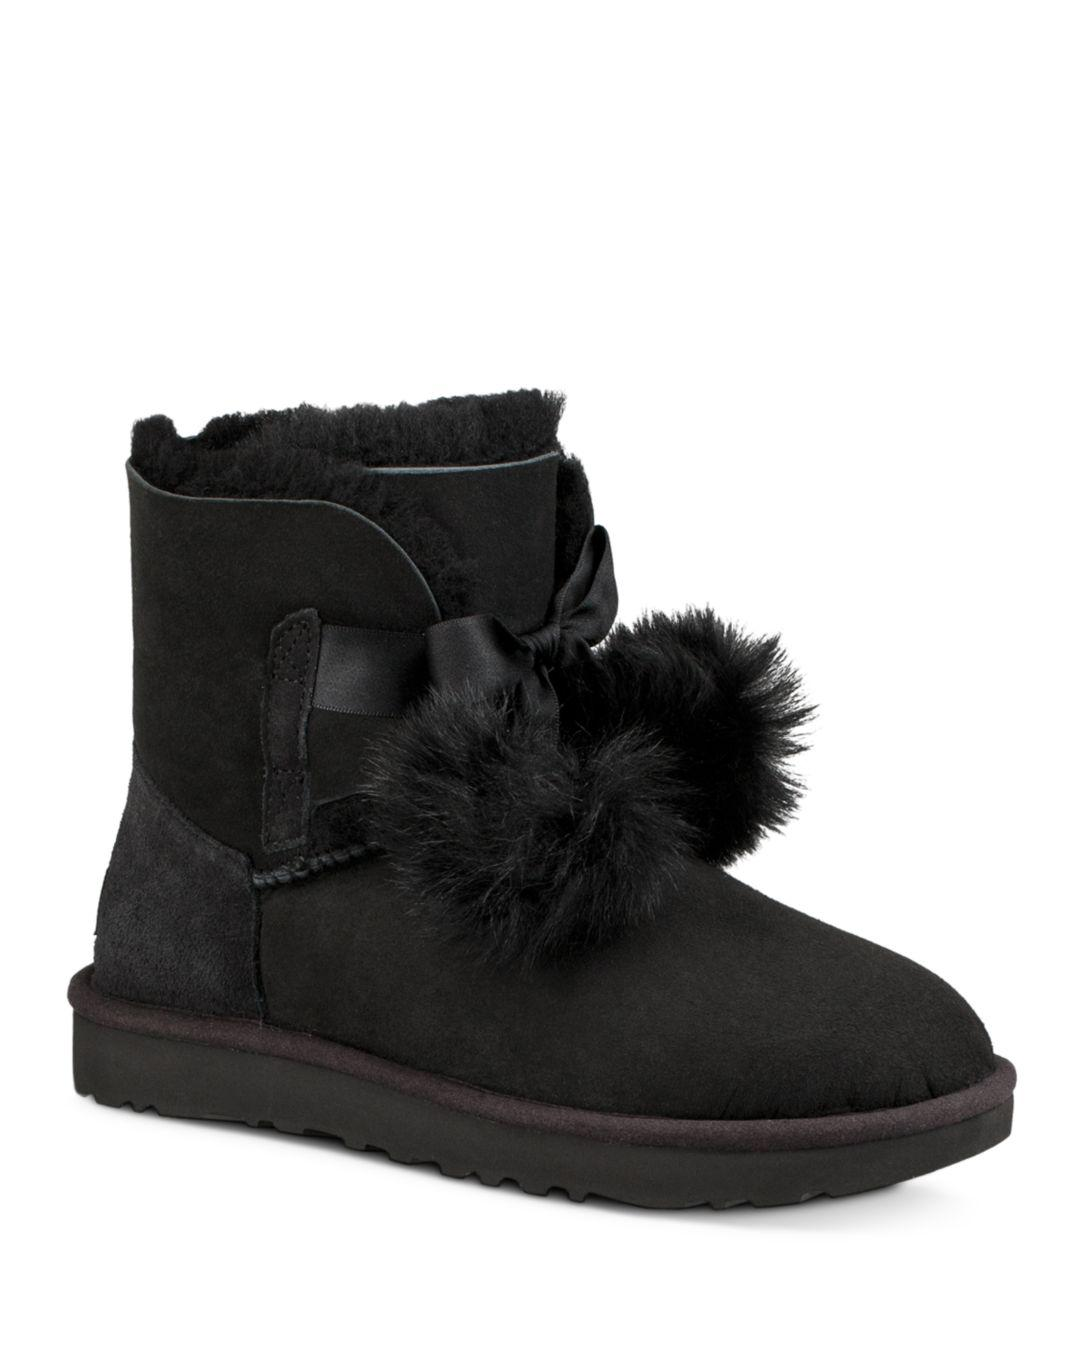 7878f4285a4dd Lyst - UGG Women s Gita Sheepskin   Fur Pom-pom Booties in Black ...